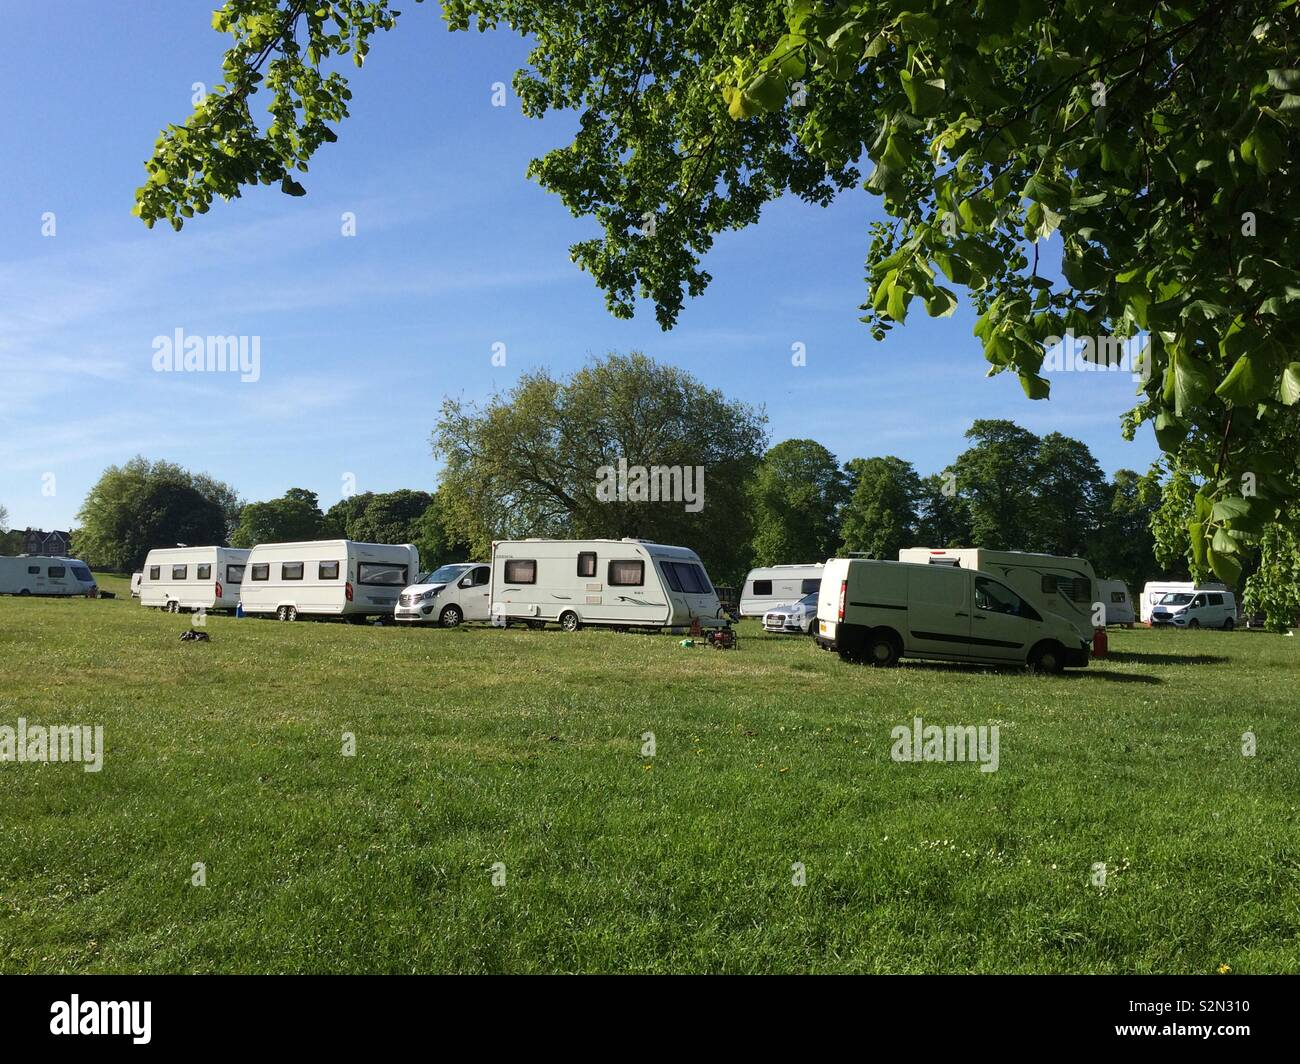 Day 2 of caravan dwellers occupying Eastville Park, Bristol. - Stock Image